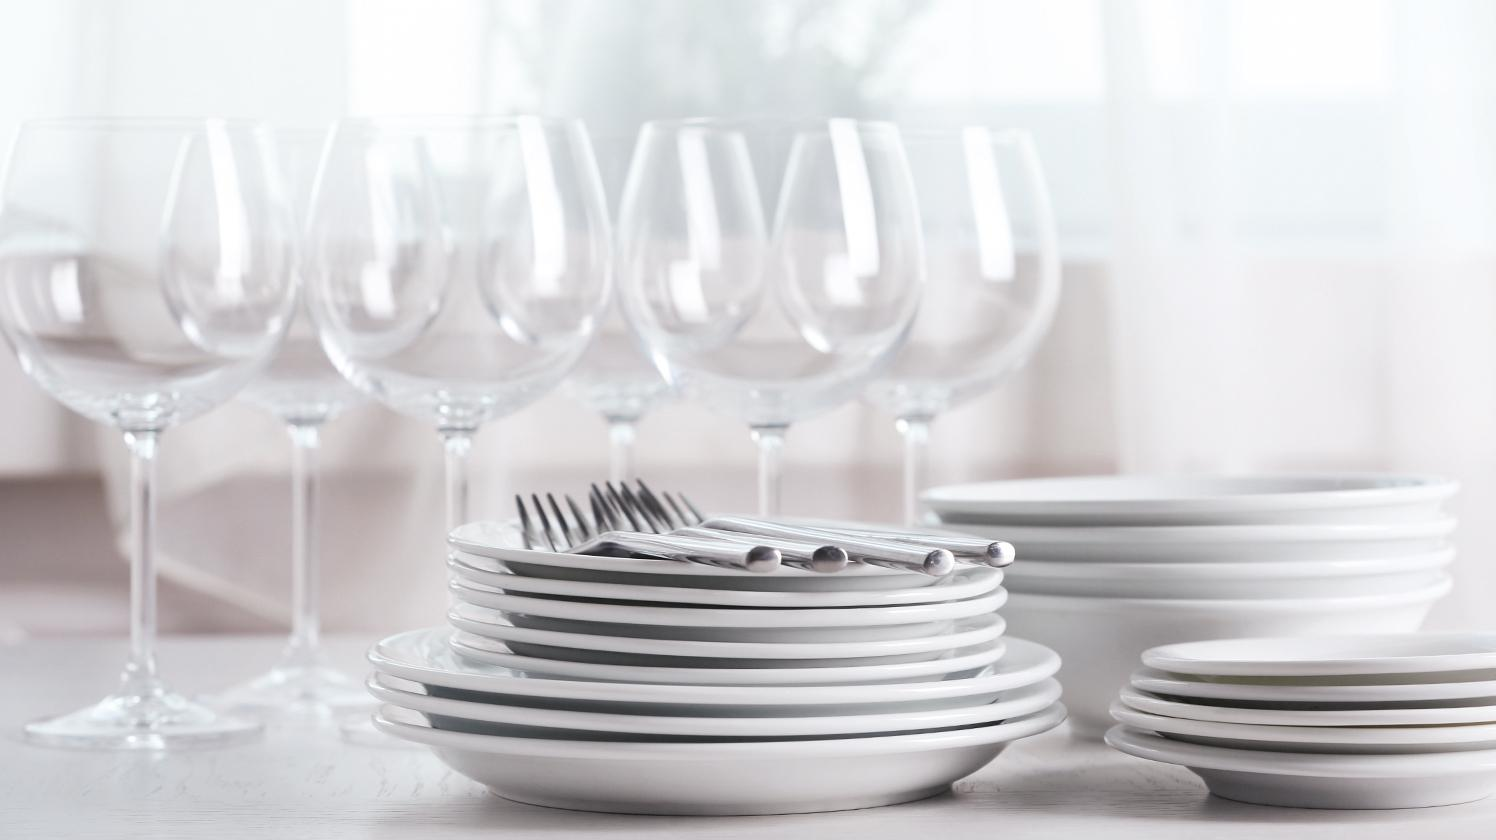 BRITA water catering glasses and dishes